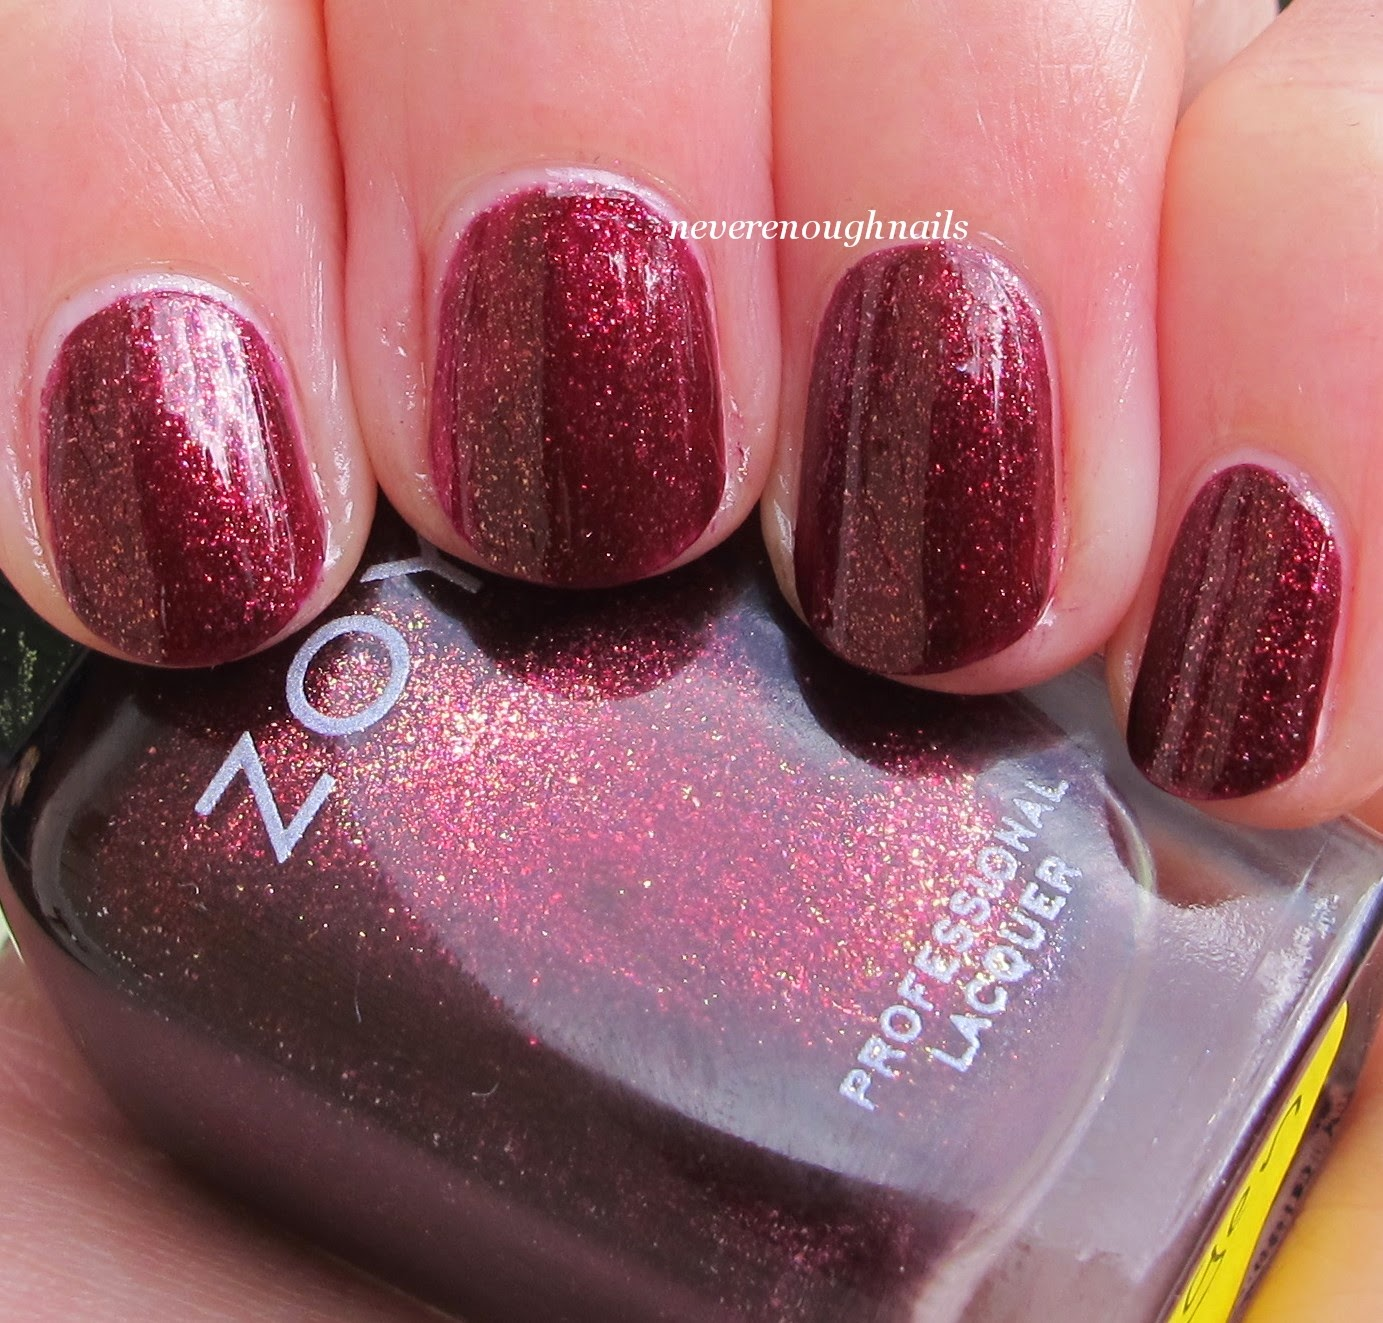 Never Enough Nails: Zoya Ignite Fall 2014 Swatches!